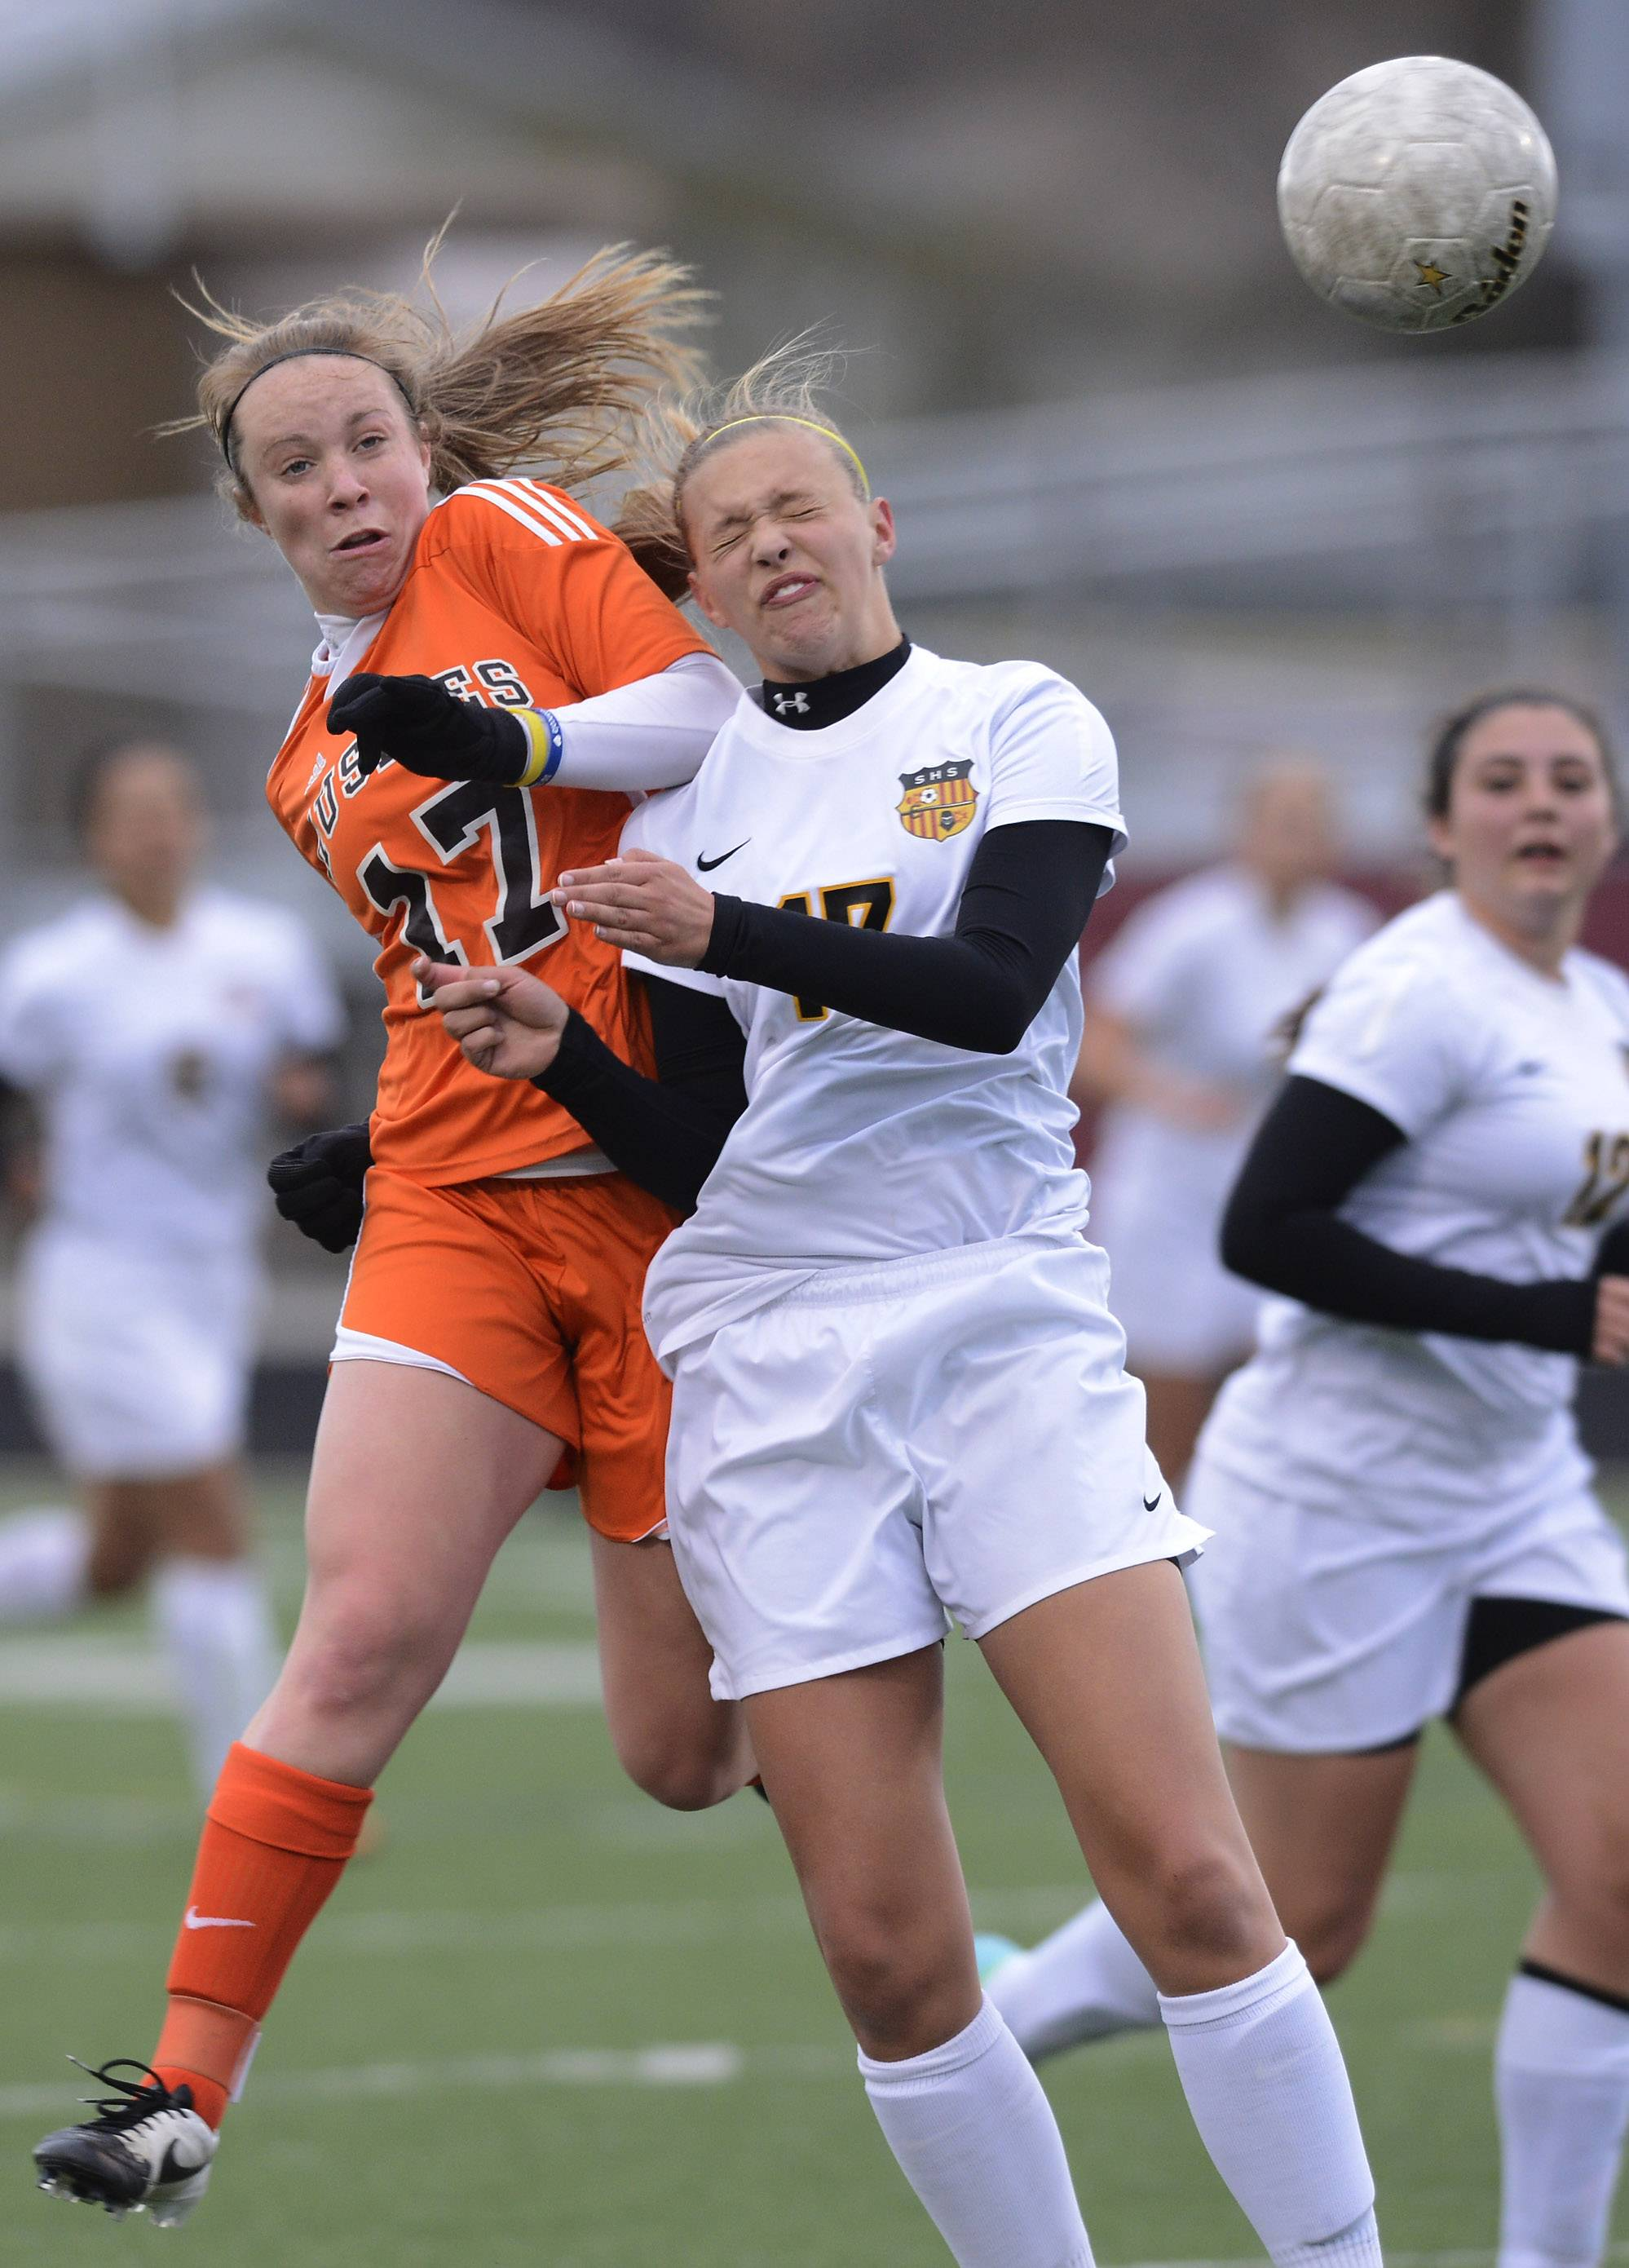 Hersey's Lauren Gierman, left, and Schaumburg's Kennedy Irmen leap for a header during Wednesday's game at Schaumburg.